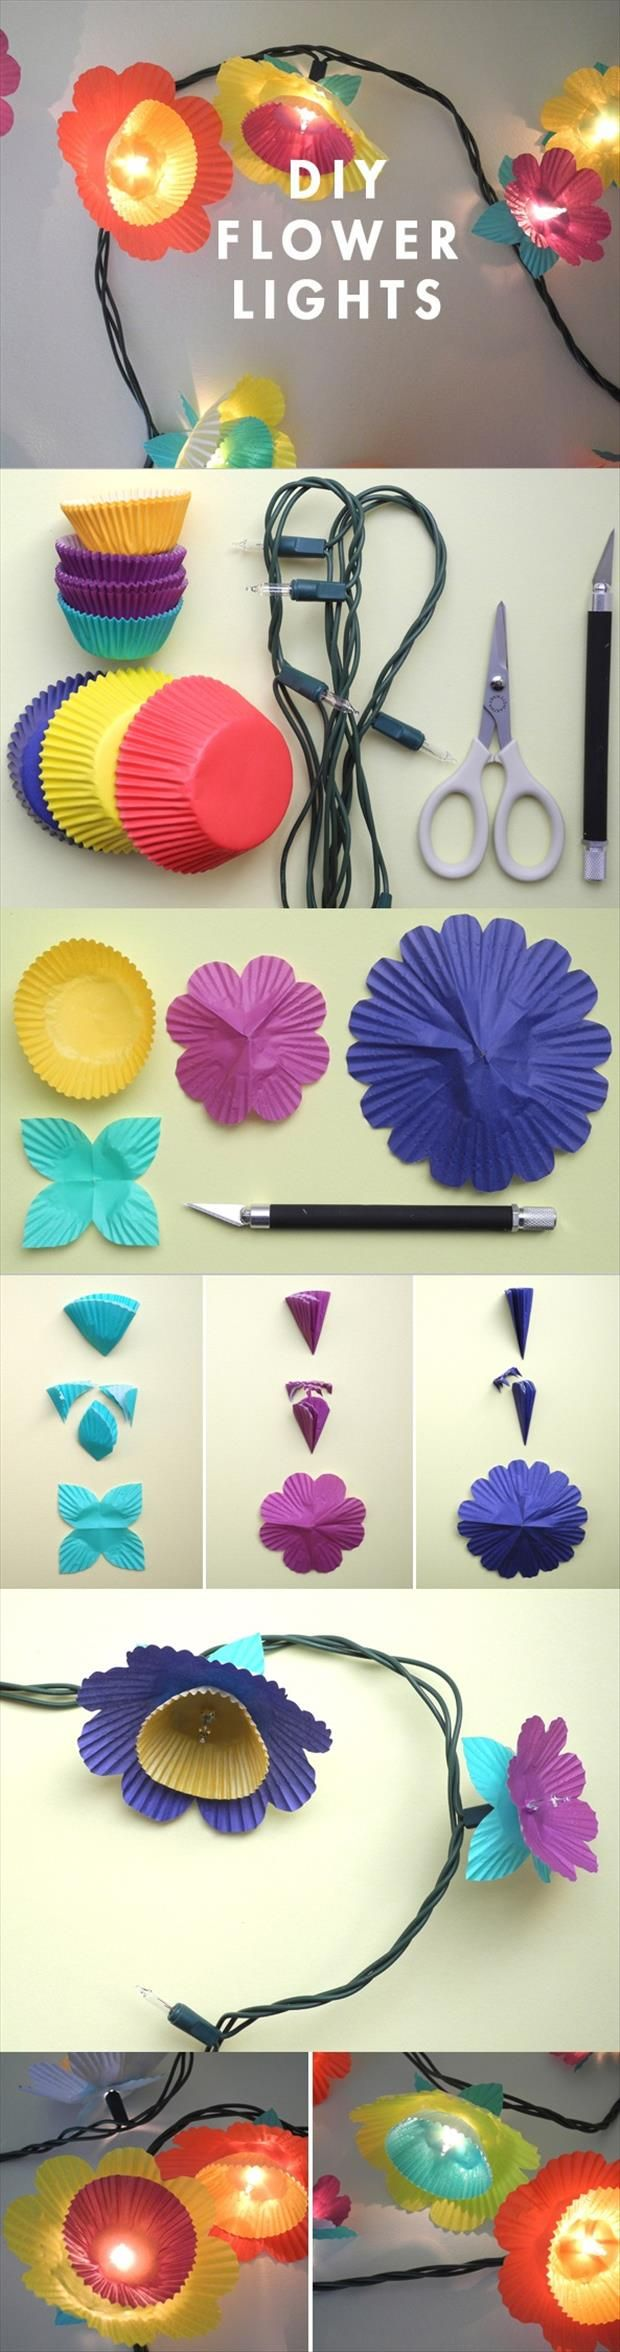 Simple Ideas That Are Borderline Crafty – 55 Pics